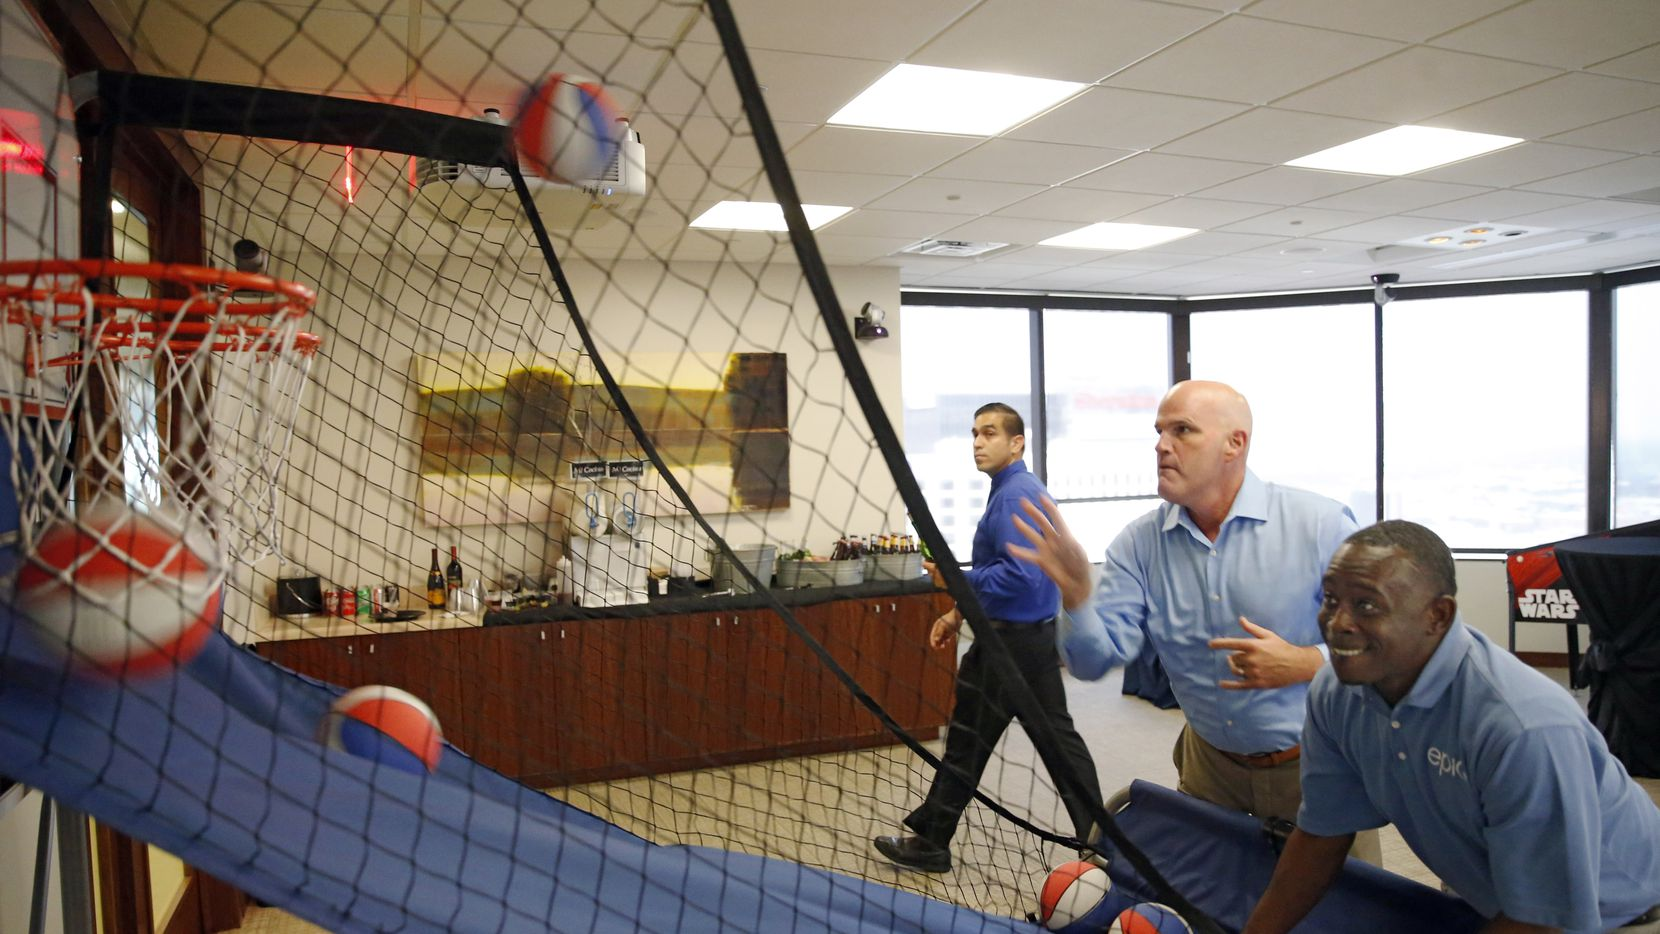 CEO Phil Appenzeller plays a game of basketball with Marcus Morgan during an employee event at Munsch Hardt in Dallas in 2019.